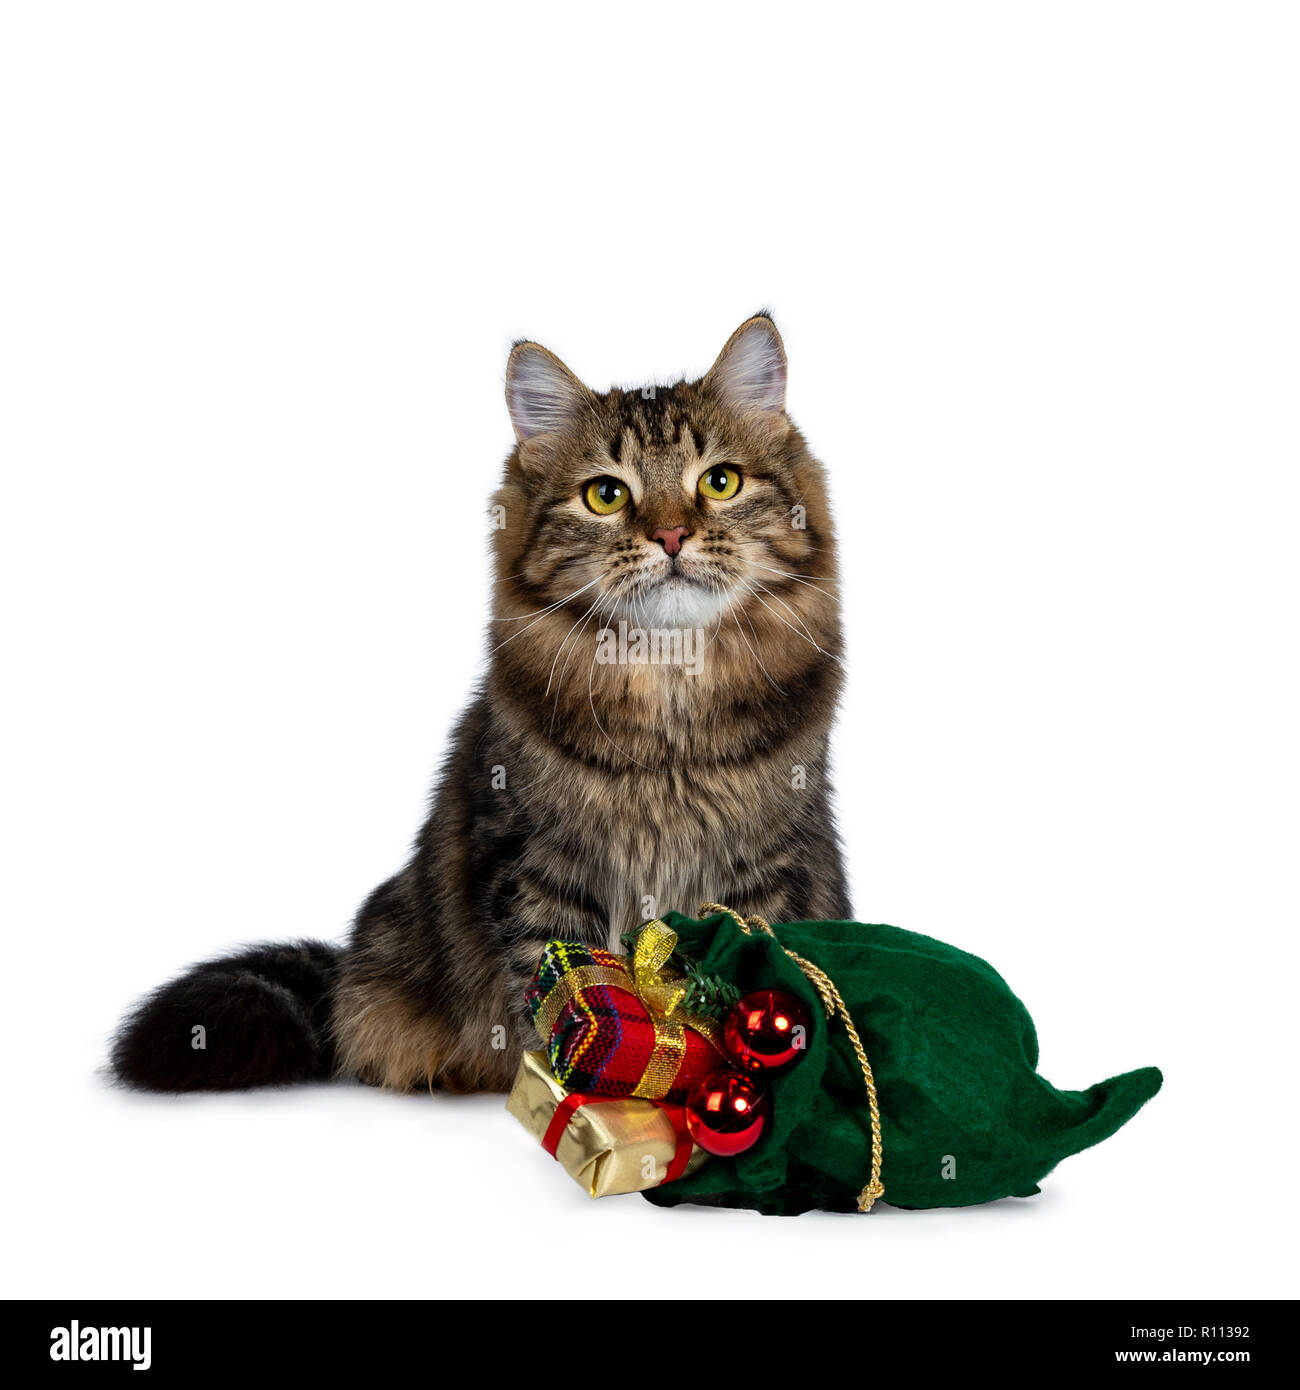 Cute black tabby Siberian cat kitten sitting upbehind a green christmas bag filled with presents and red balls, looking up with bright yellow eyes. Is - Stock Image